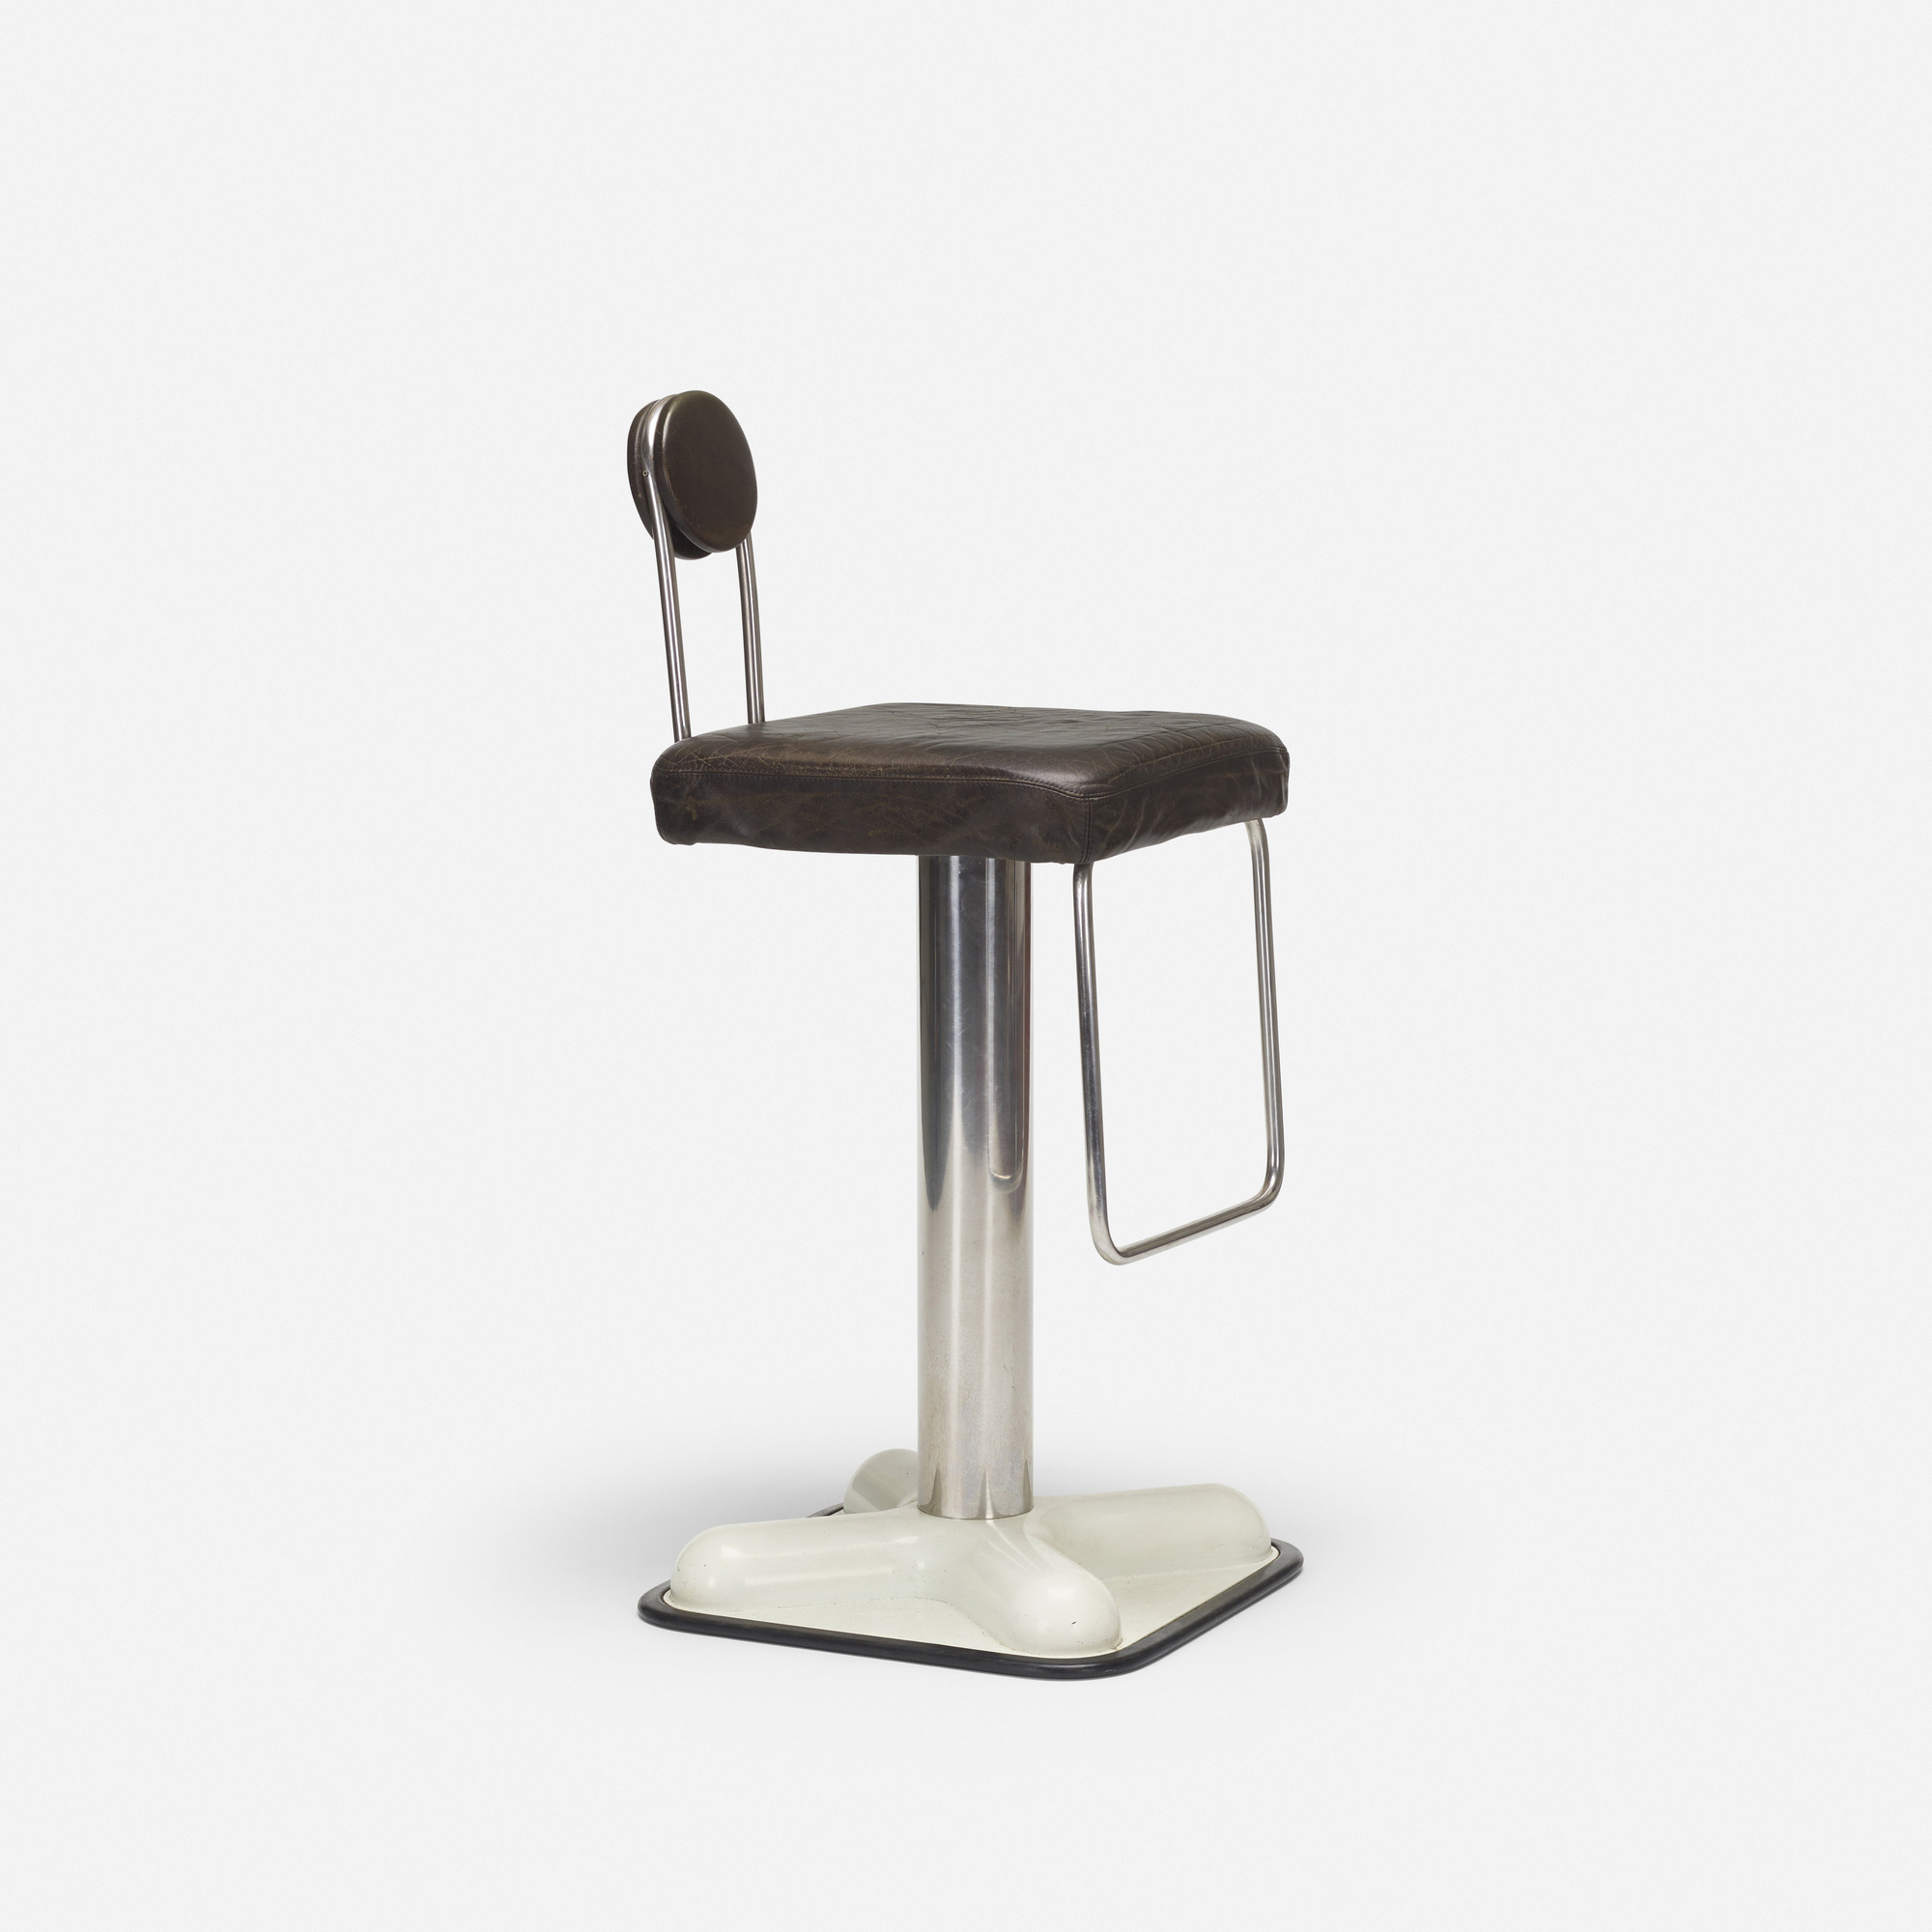 210: Joe Colombo / Birillo stool (1 of 3)